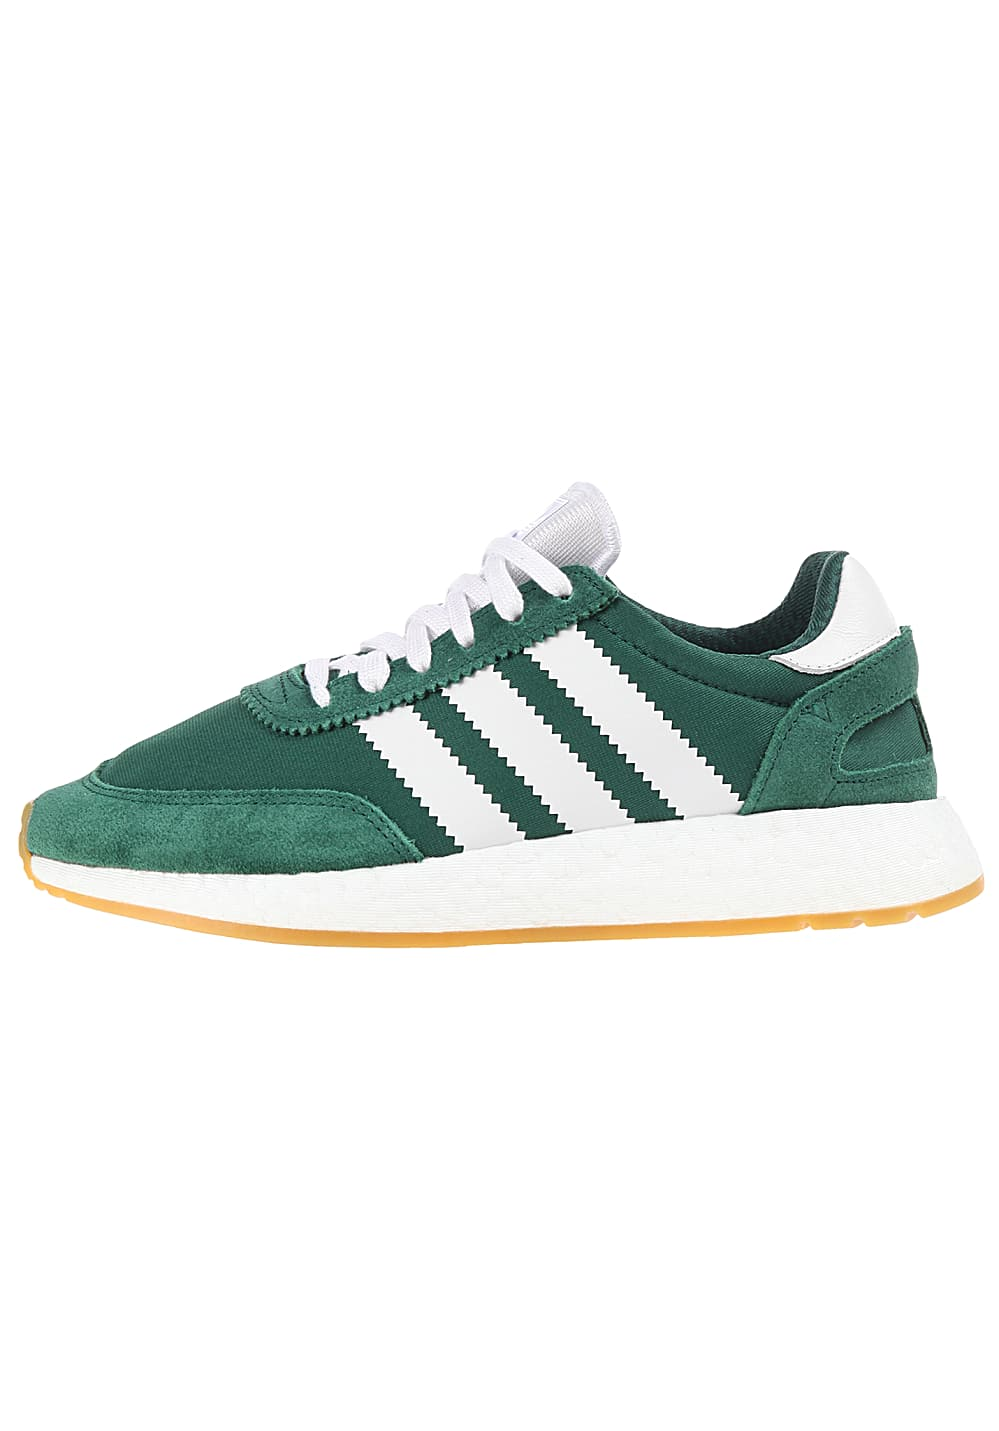 Claraboya Noble Calibre  adidas Originals I-5923 - Sneaker für Damen - Grün - Planet Sports